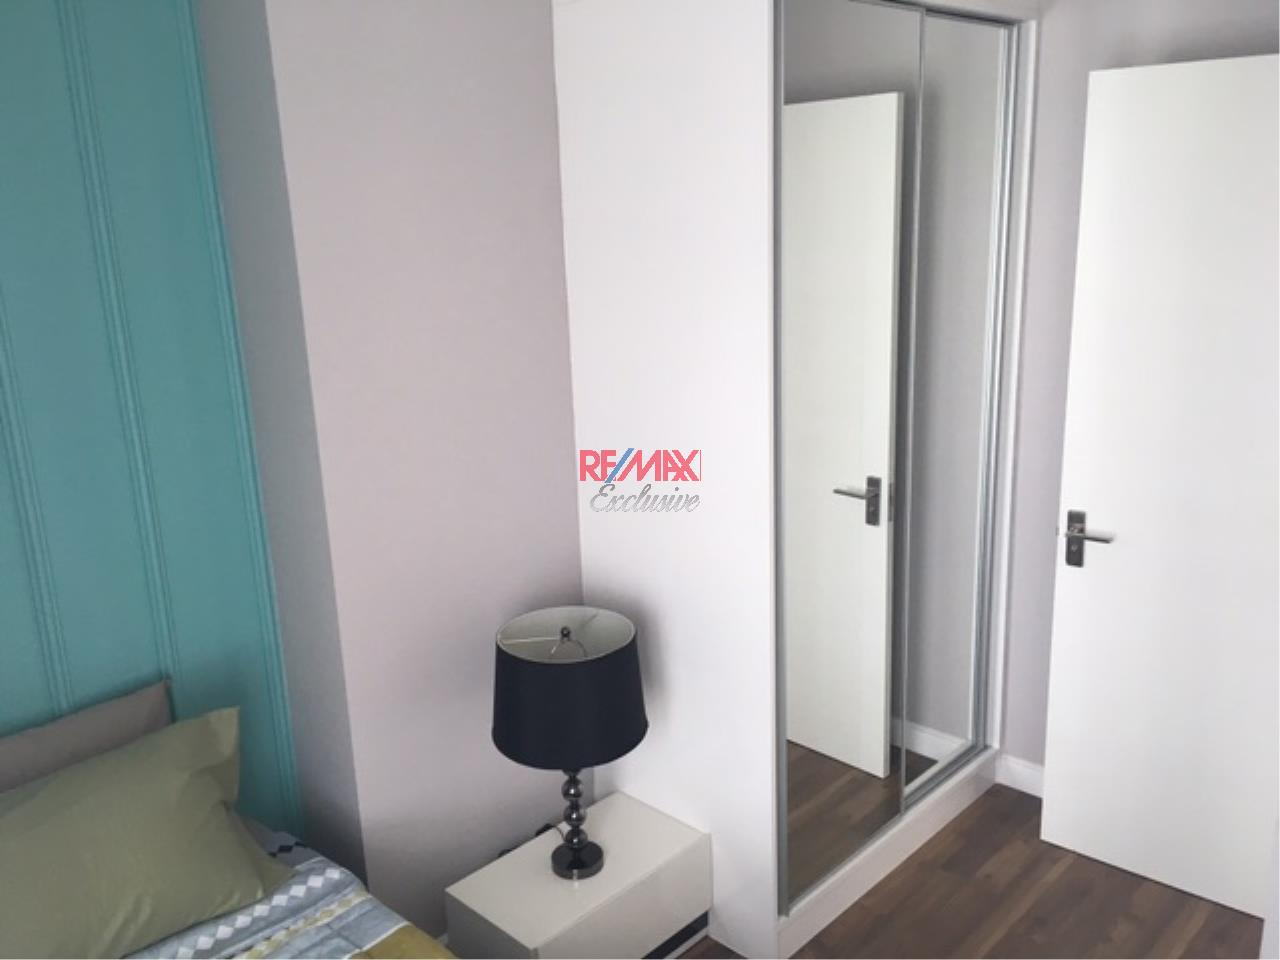 RE/MAX Exclusive Agency's The BLOOM, Sukhumvit 71.,2 Bedroom, 59 Sqm., Fully-Furnished, EXCLUSIVE UNIT, TOP FLOOR for RENT !! 9